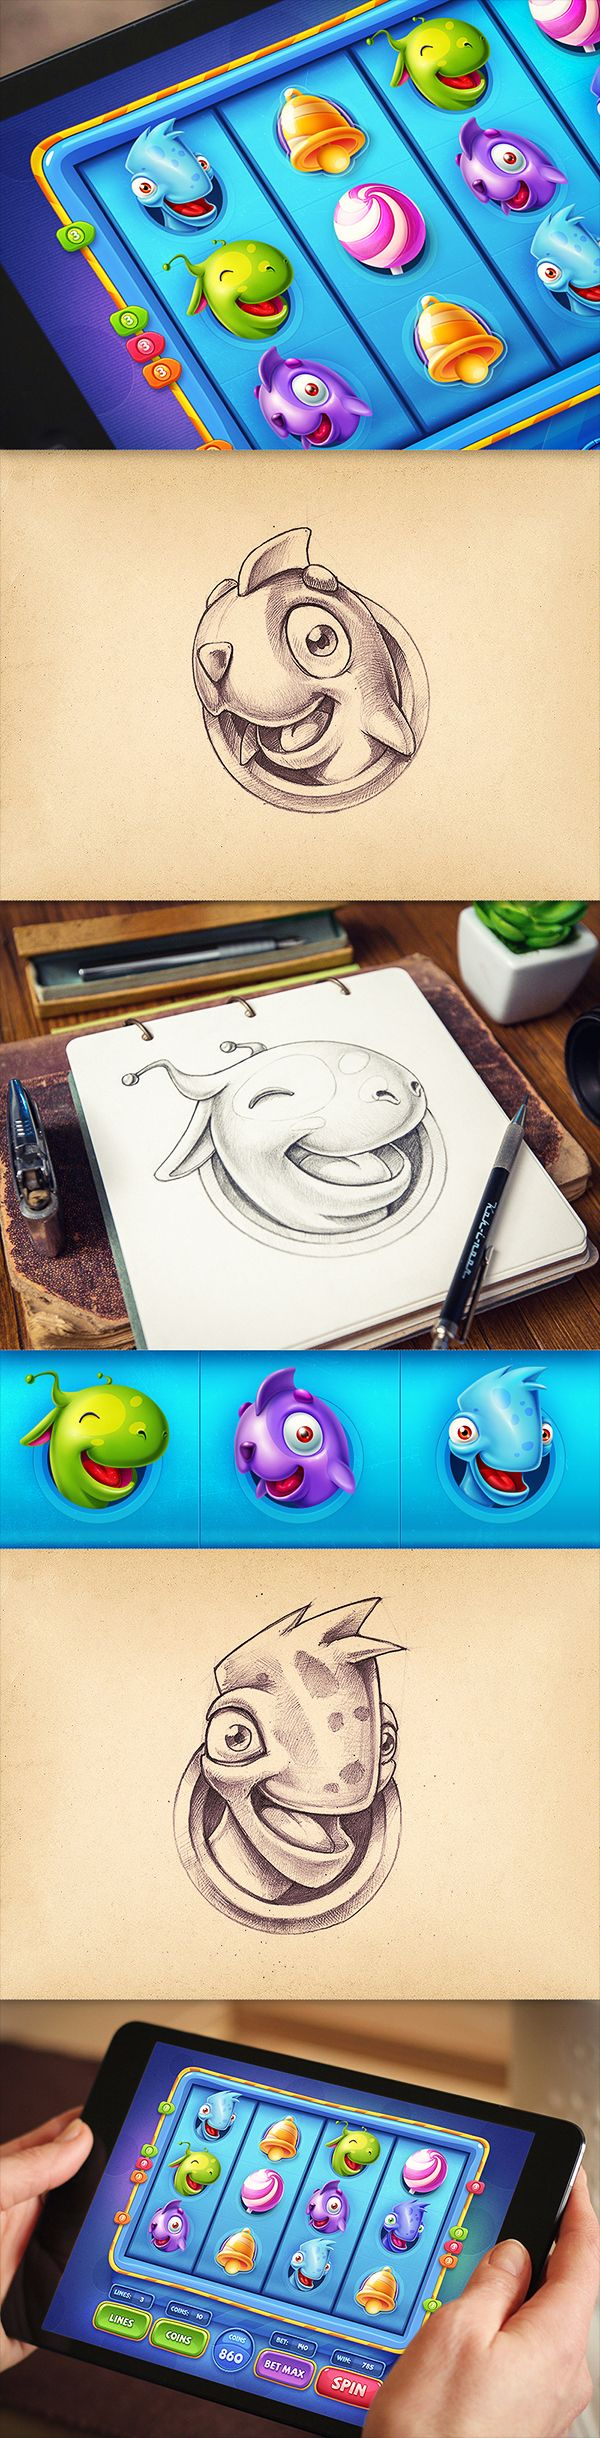 iOS Games   Part 3 on Behance